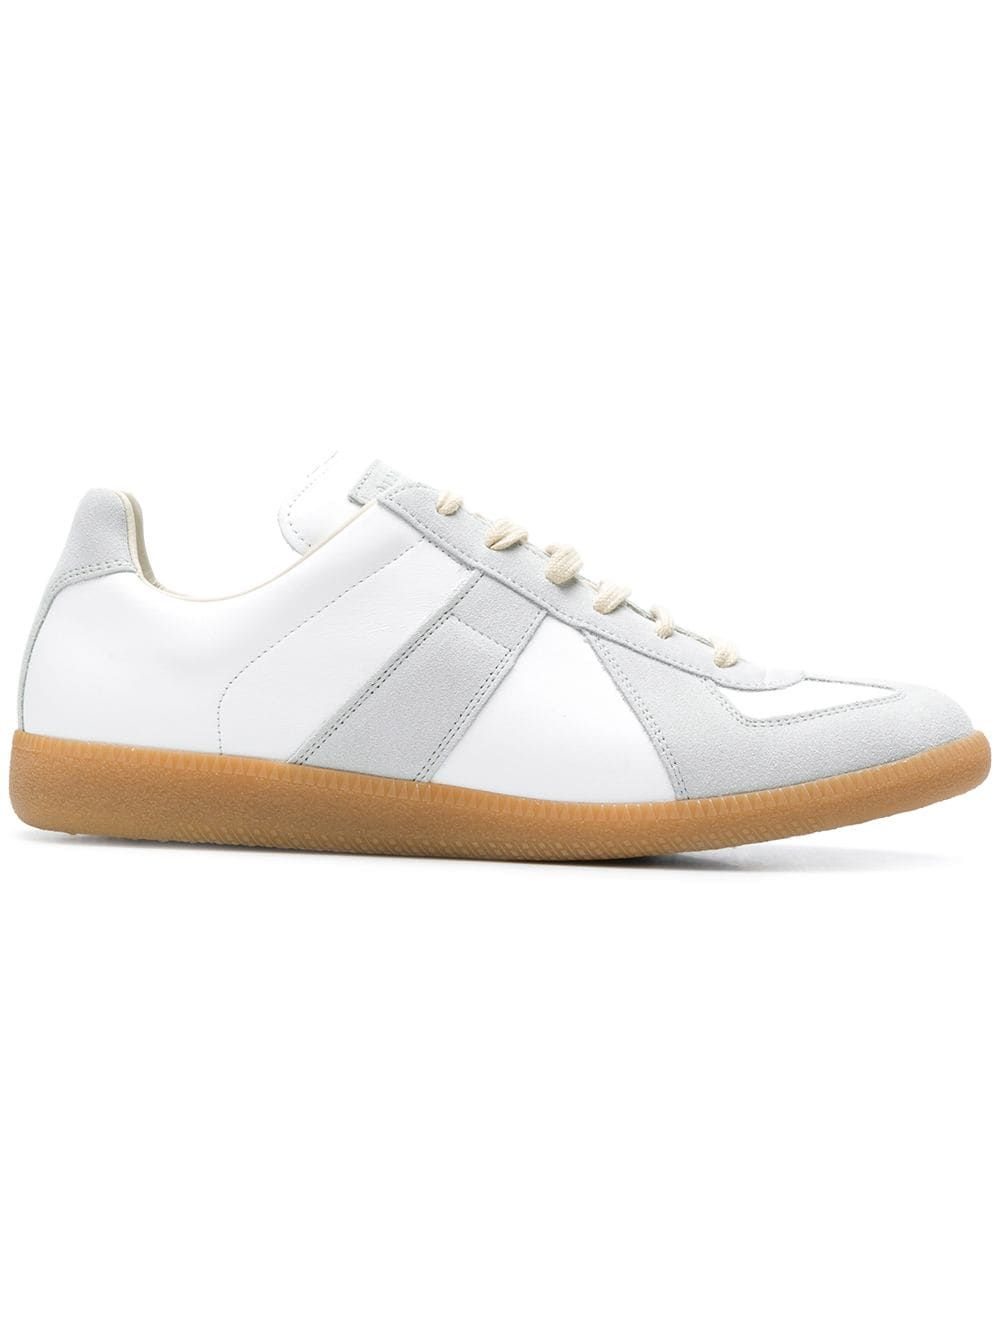 d713a51fe6b Maison Margiela Replica sneakers - White in 2019 | Products ...